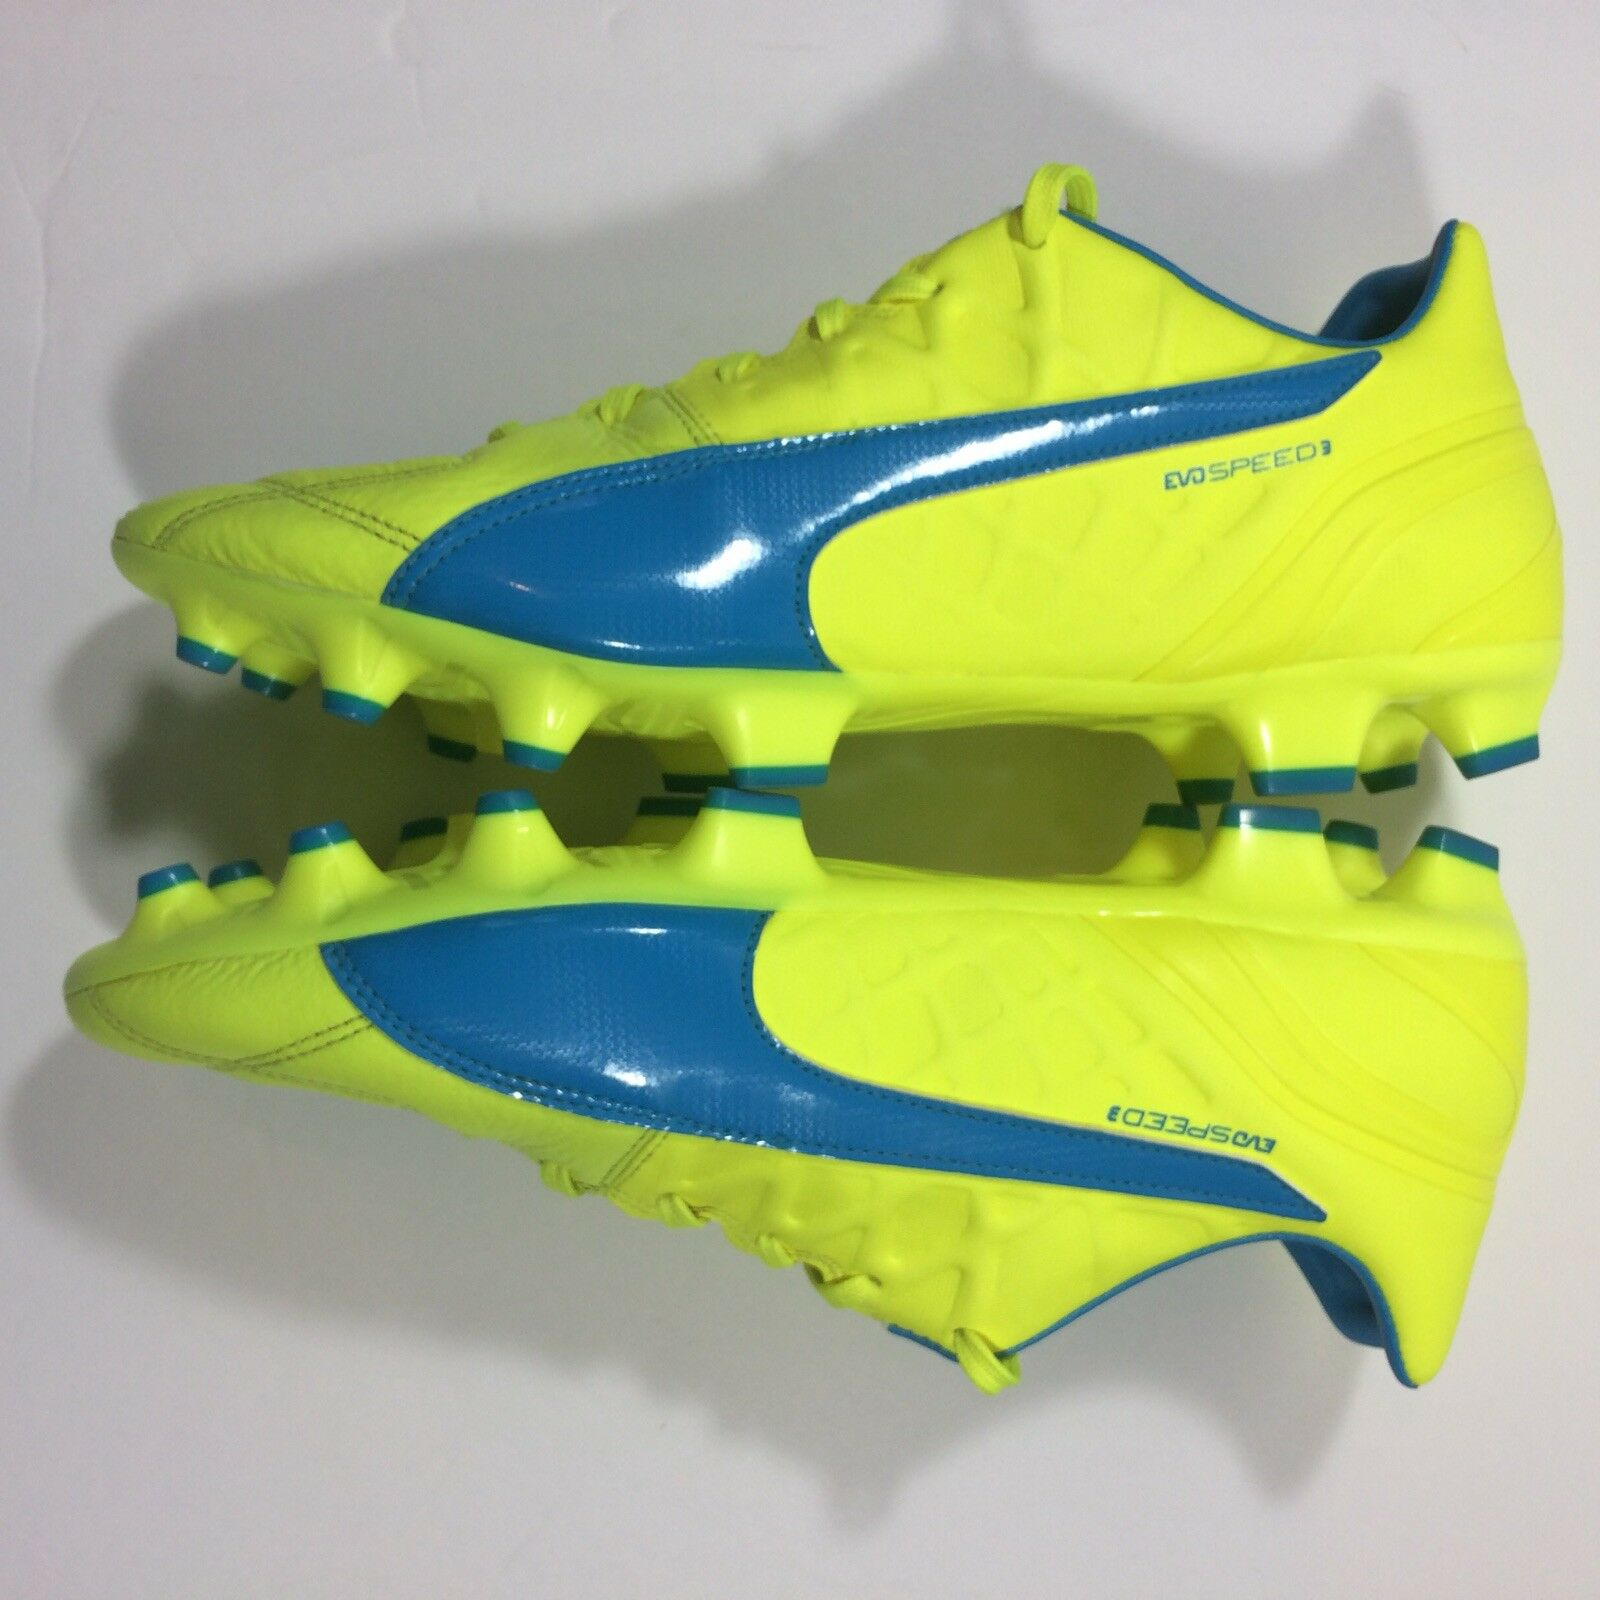 NWB Puma Evospeed 3.4 Lth Firm Ground Football/Soccer Cleats Cleats Cleats  Herren 10.5 Gelb df2fe3